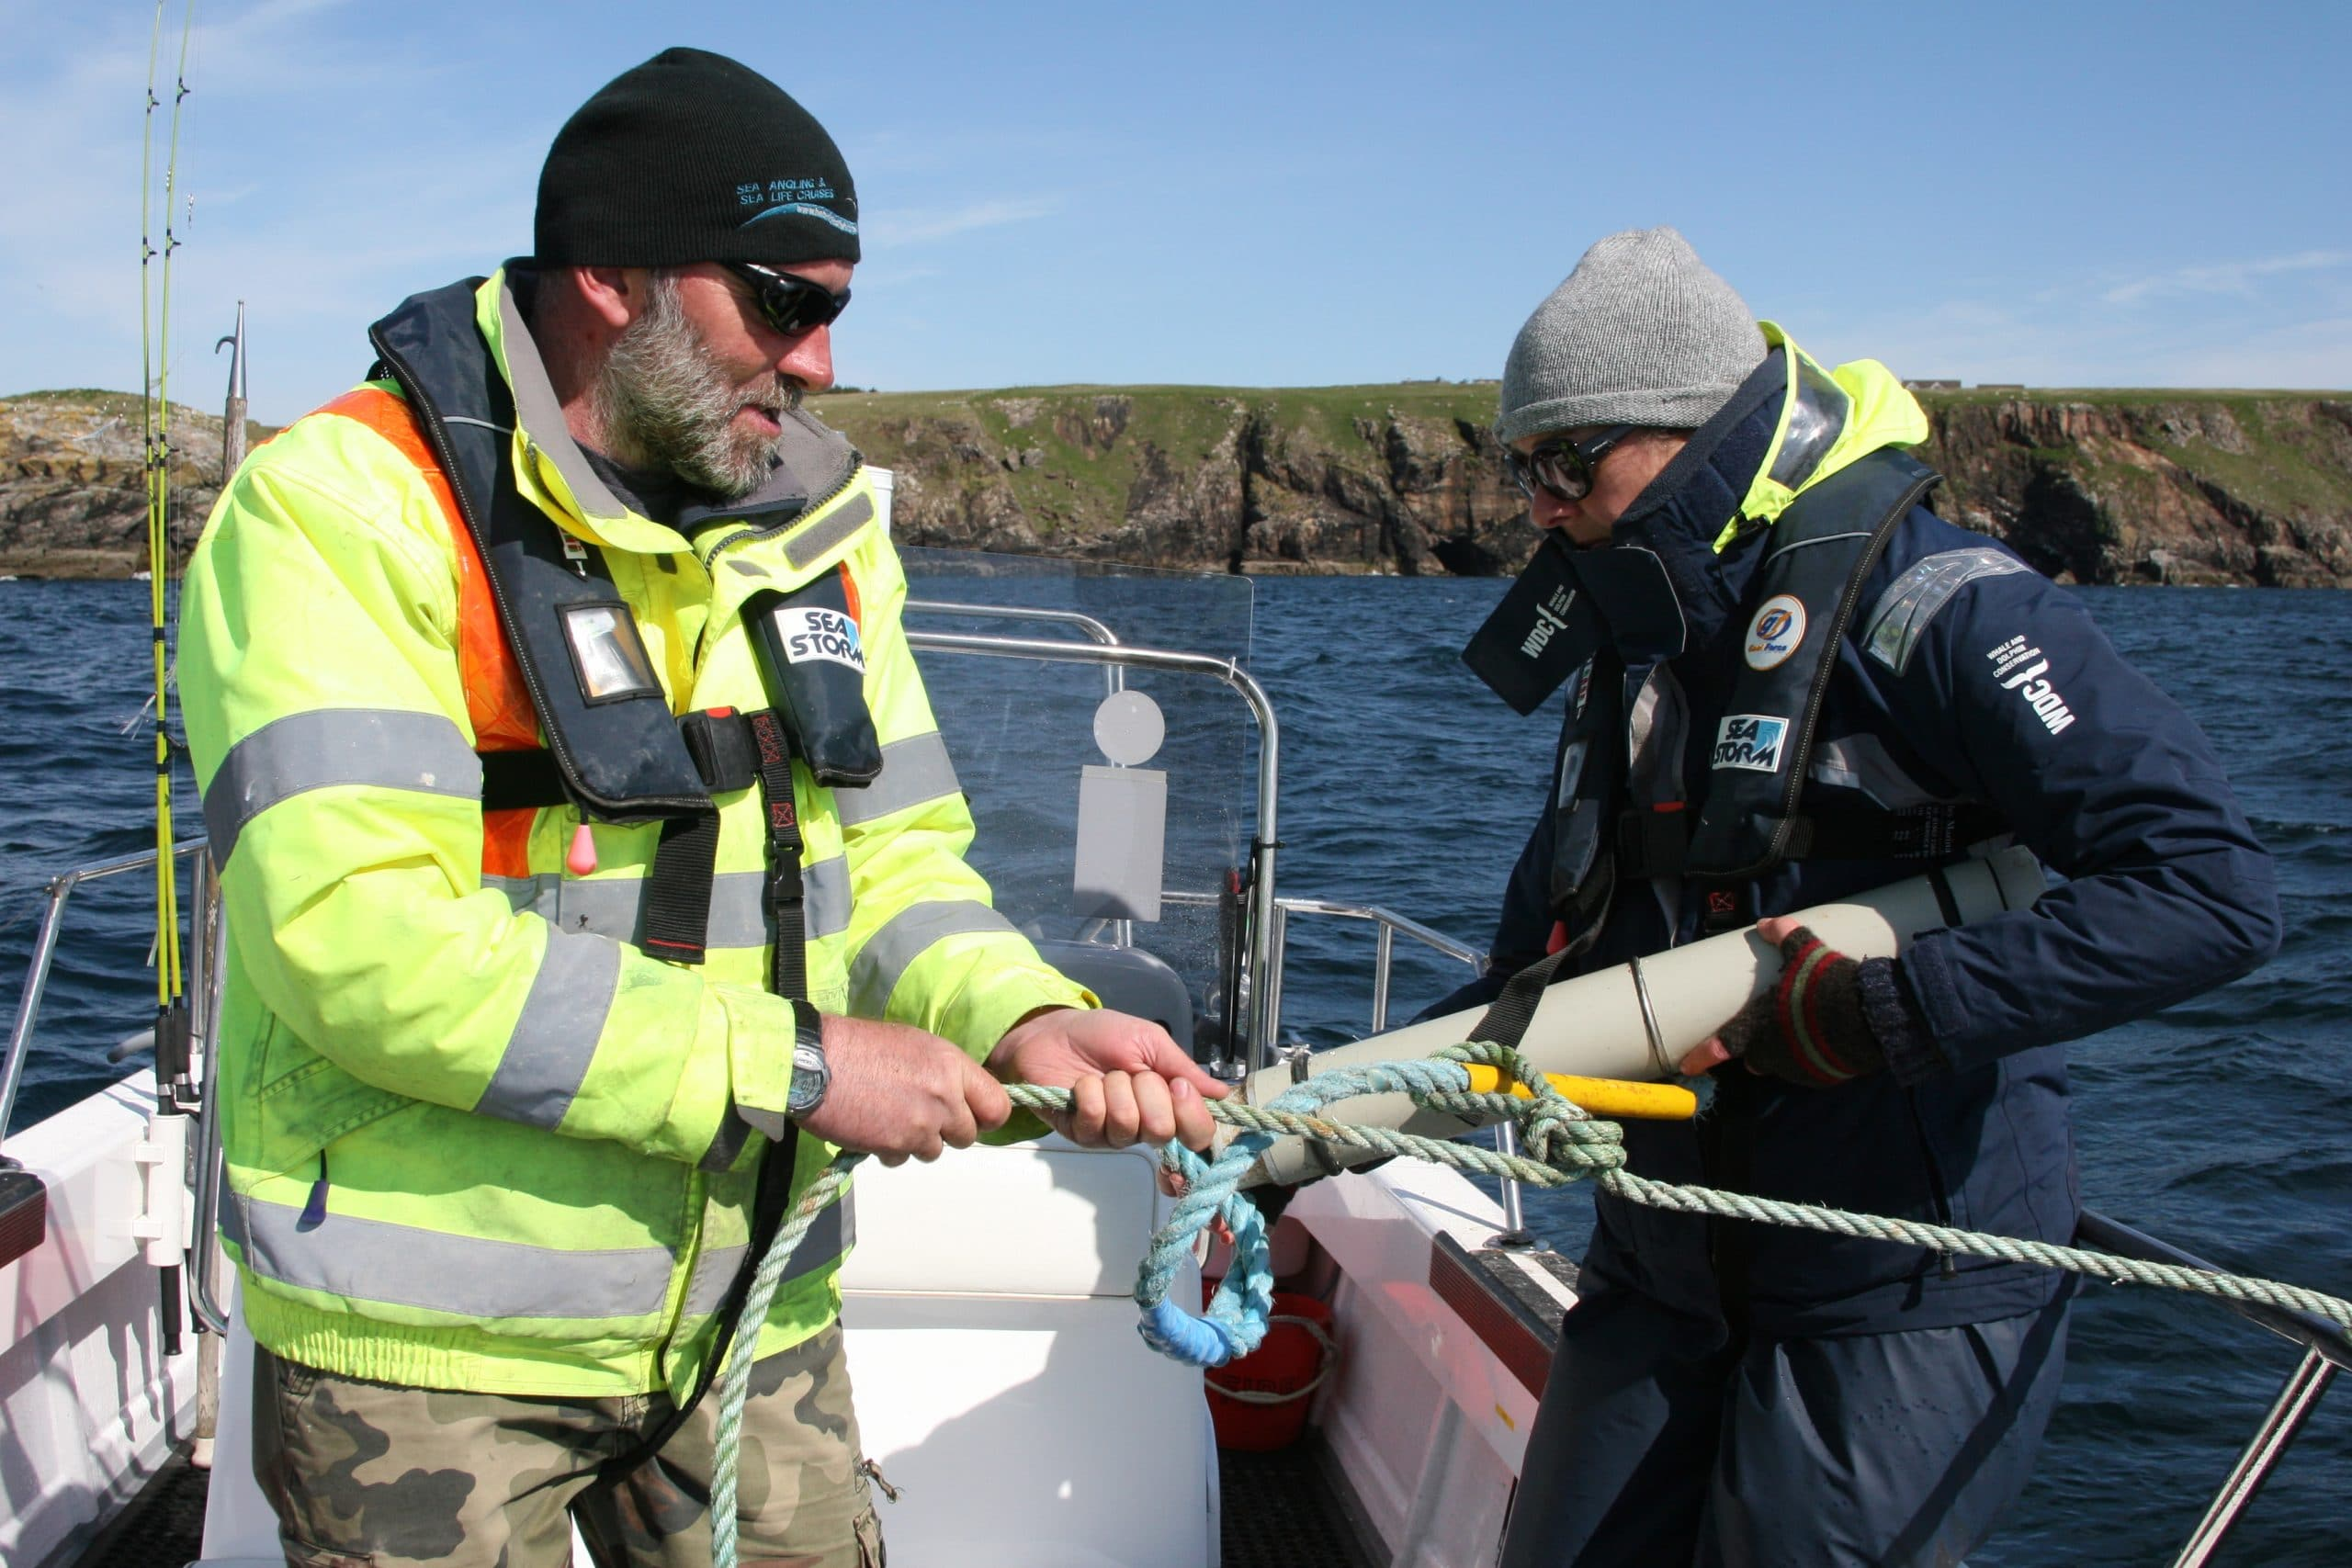 Our skipper and me  deploying acoustic recorders